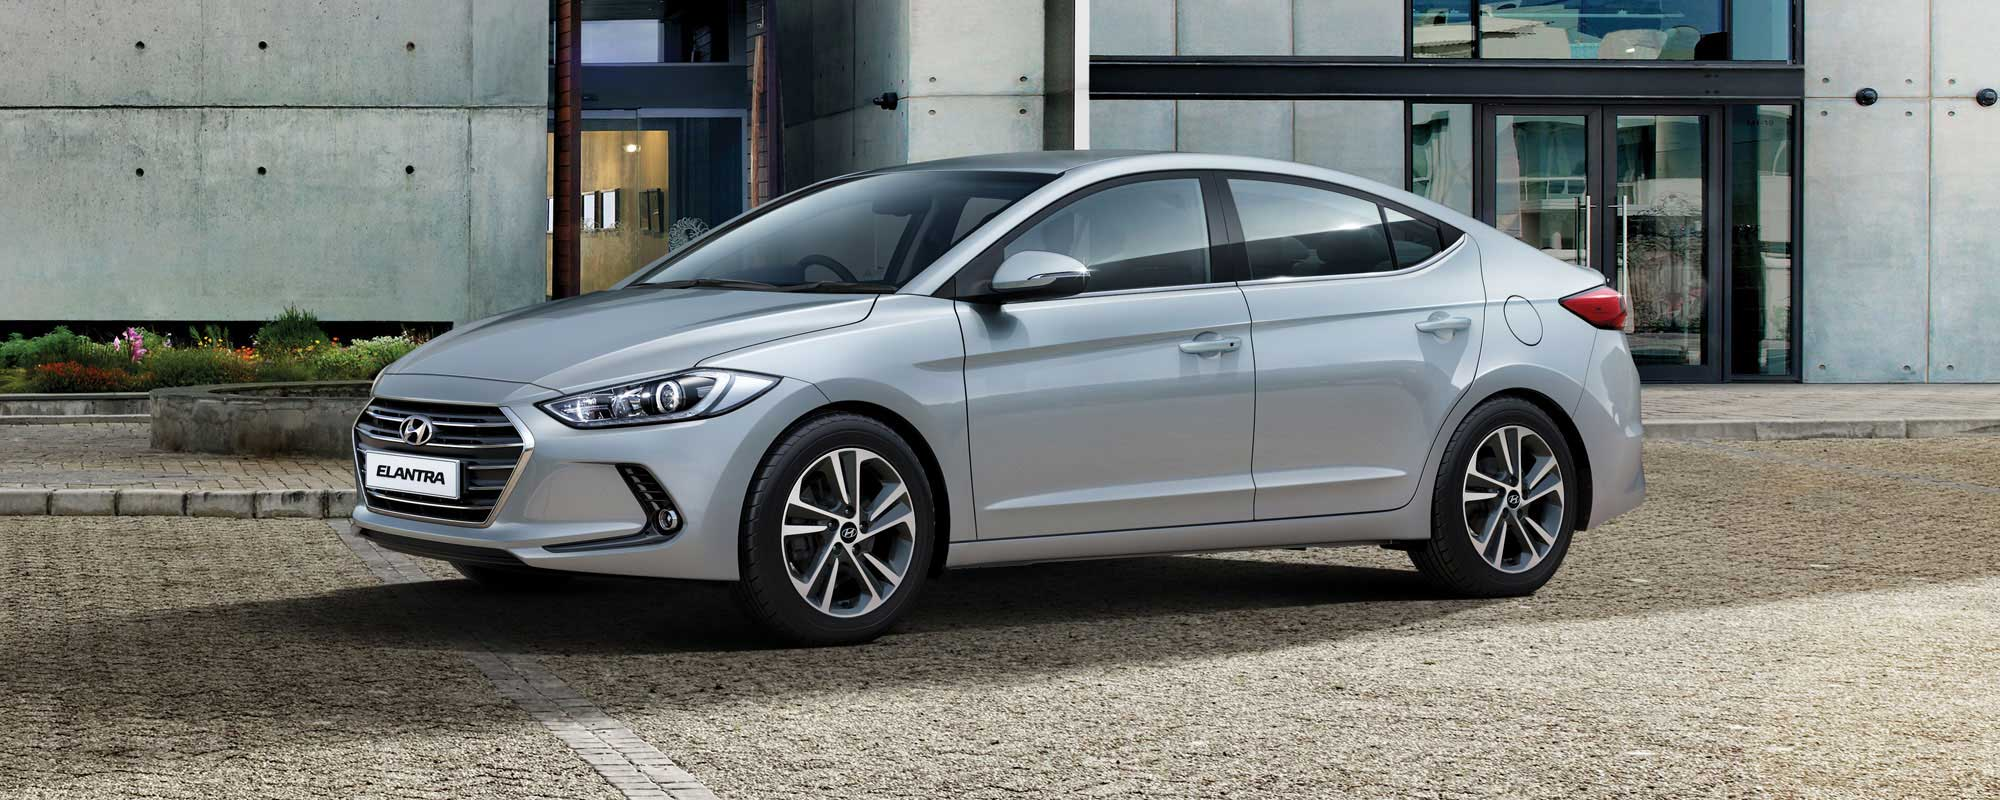 hyundai elantra for cairns accessories homenew trinity sale new in